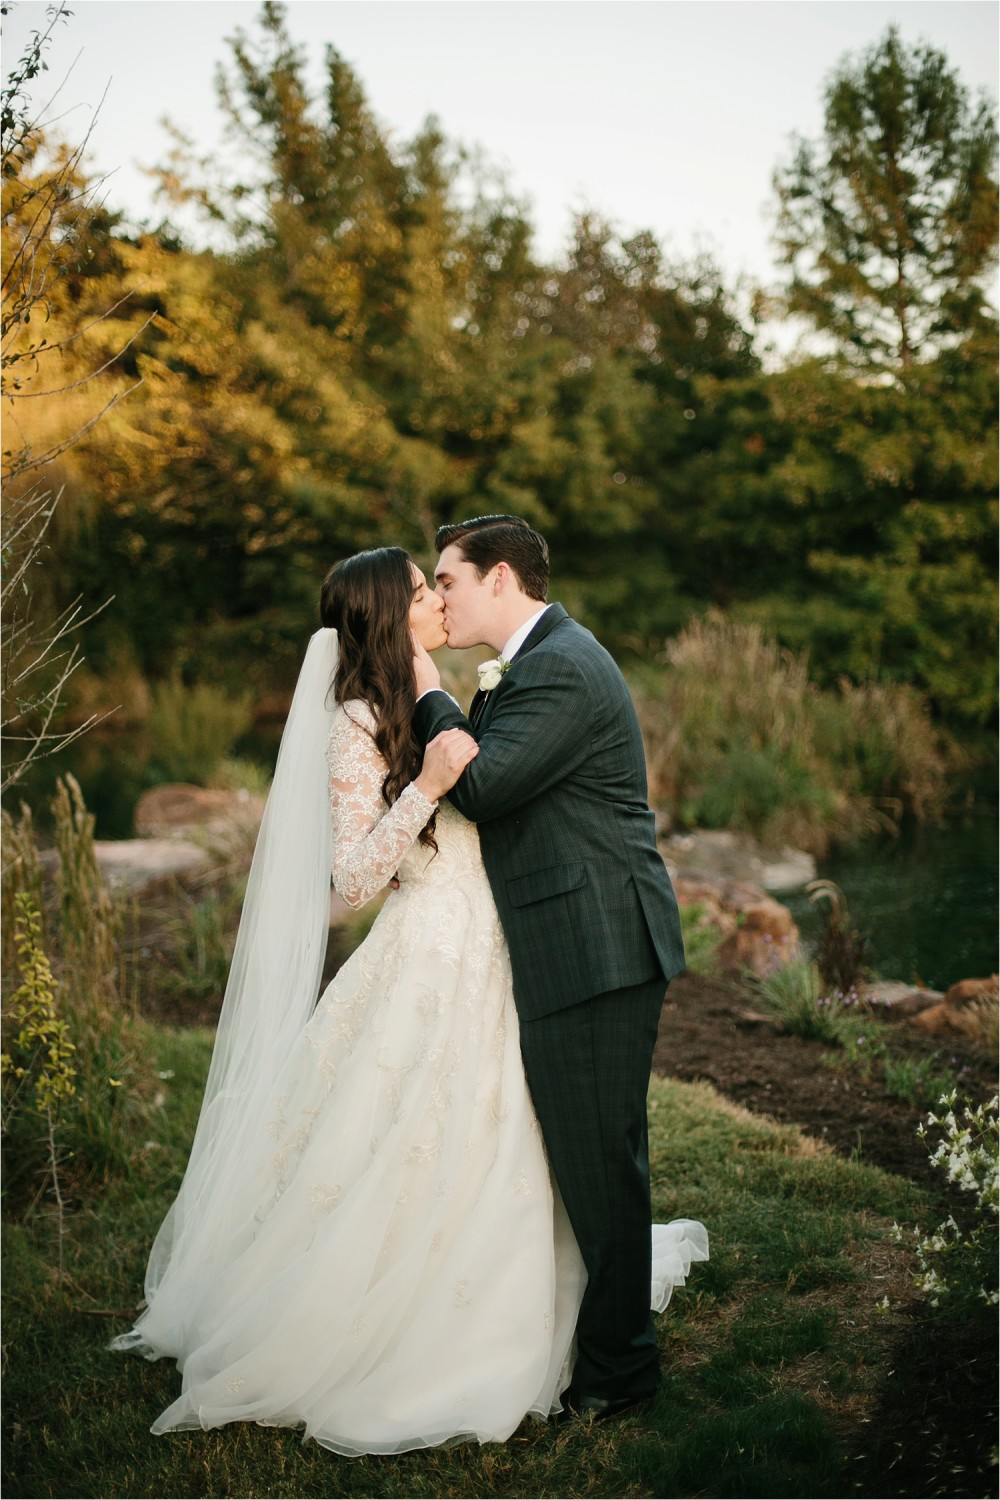 an-elegant-family-ranch-wedding-on-lake-worth-with-burgundy-apricot-and-blush-inspired-decorations-by-north-texas-wedding-photographer-rachel-meagan-photography-_-44